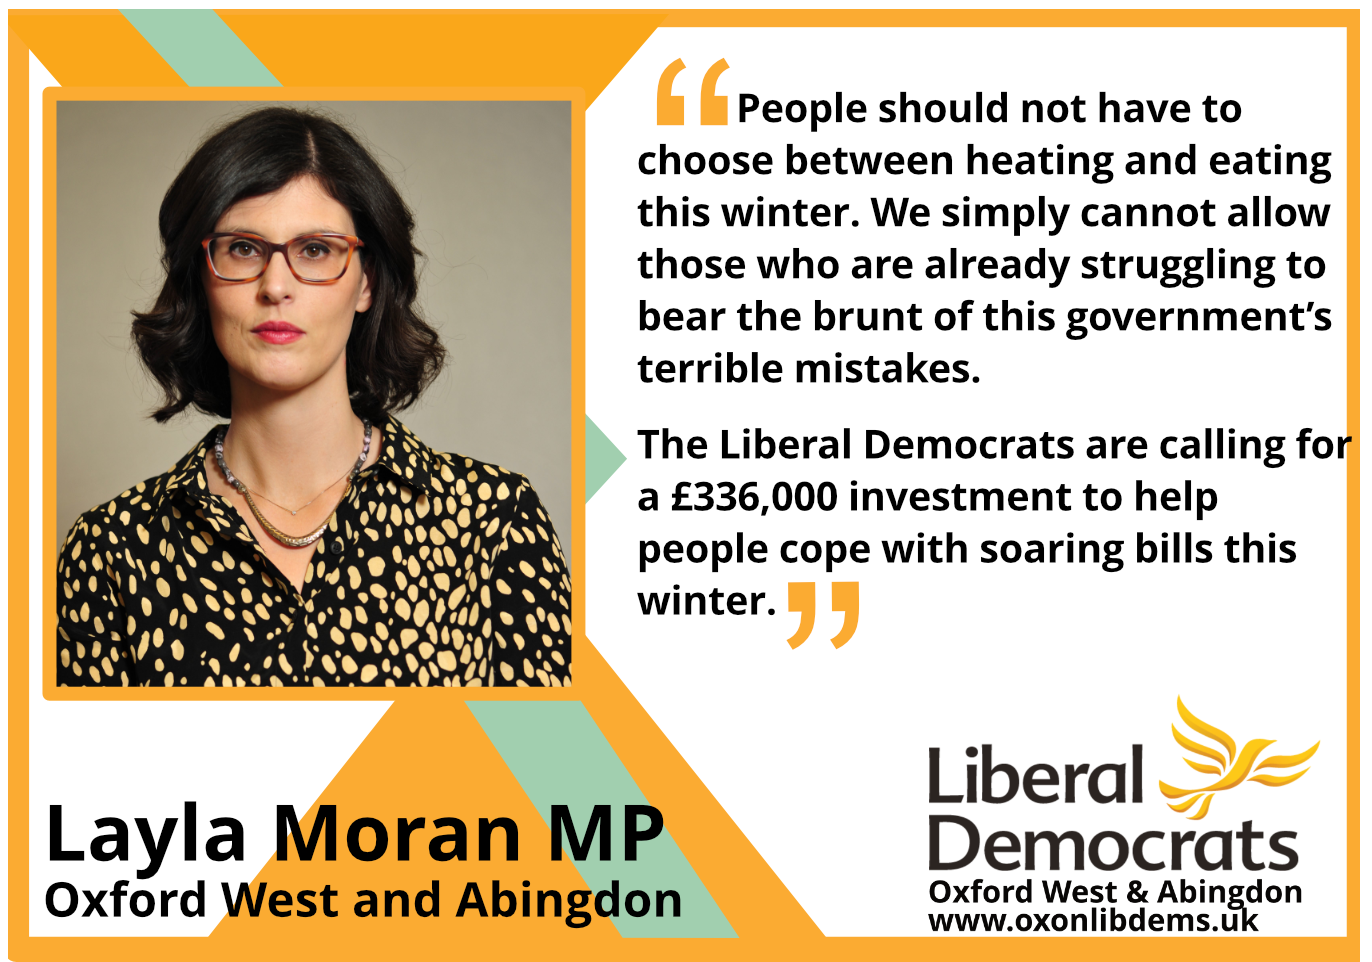 """key_People should not have to choose between heating and eating this winter. We simply cannot allow those who are already struggling to bear the brunt of this government's terrible mistakes.     """"The Liberal Democrats are calling for a £336,000 investment to help people cope with soaring bills this winter."""